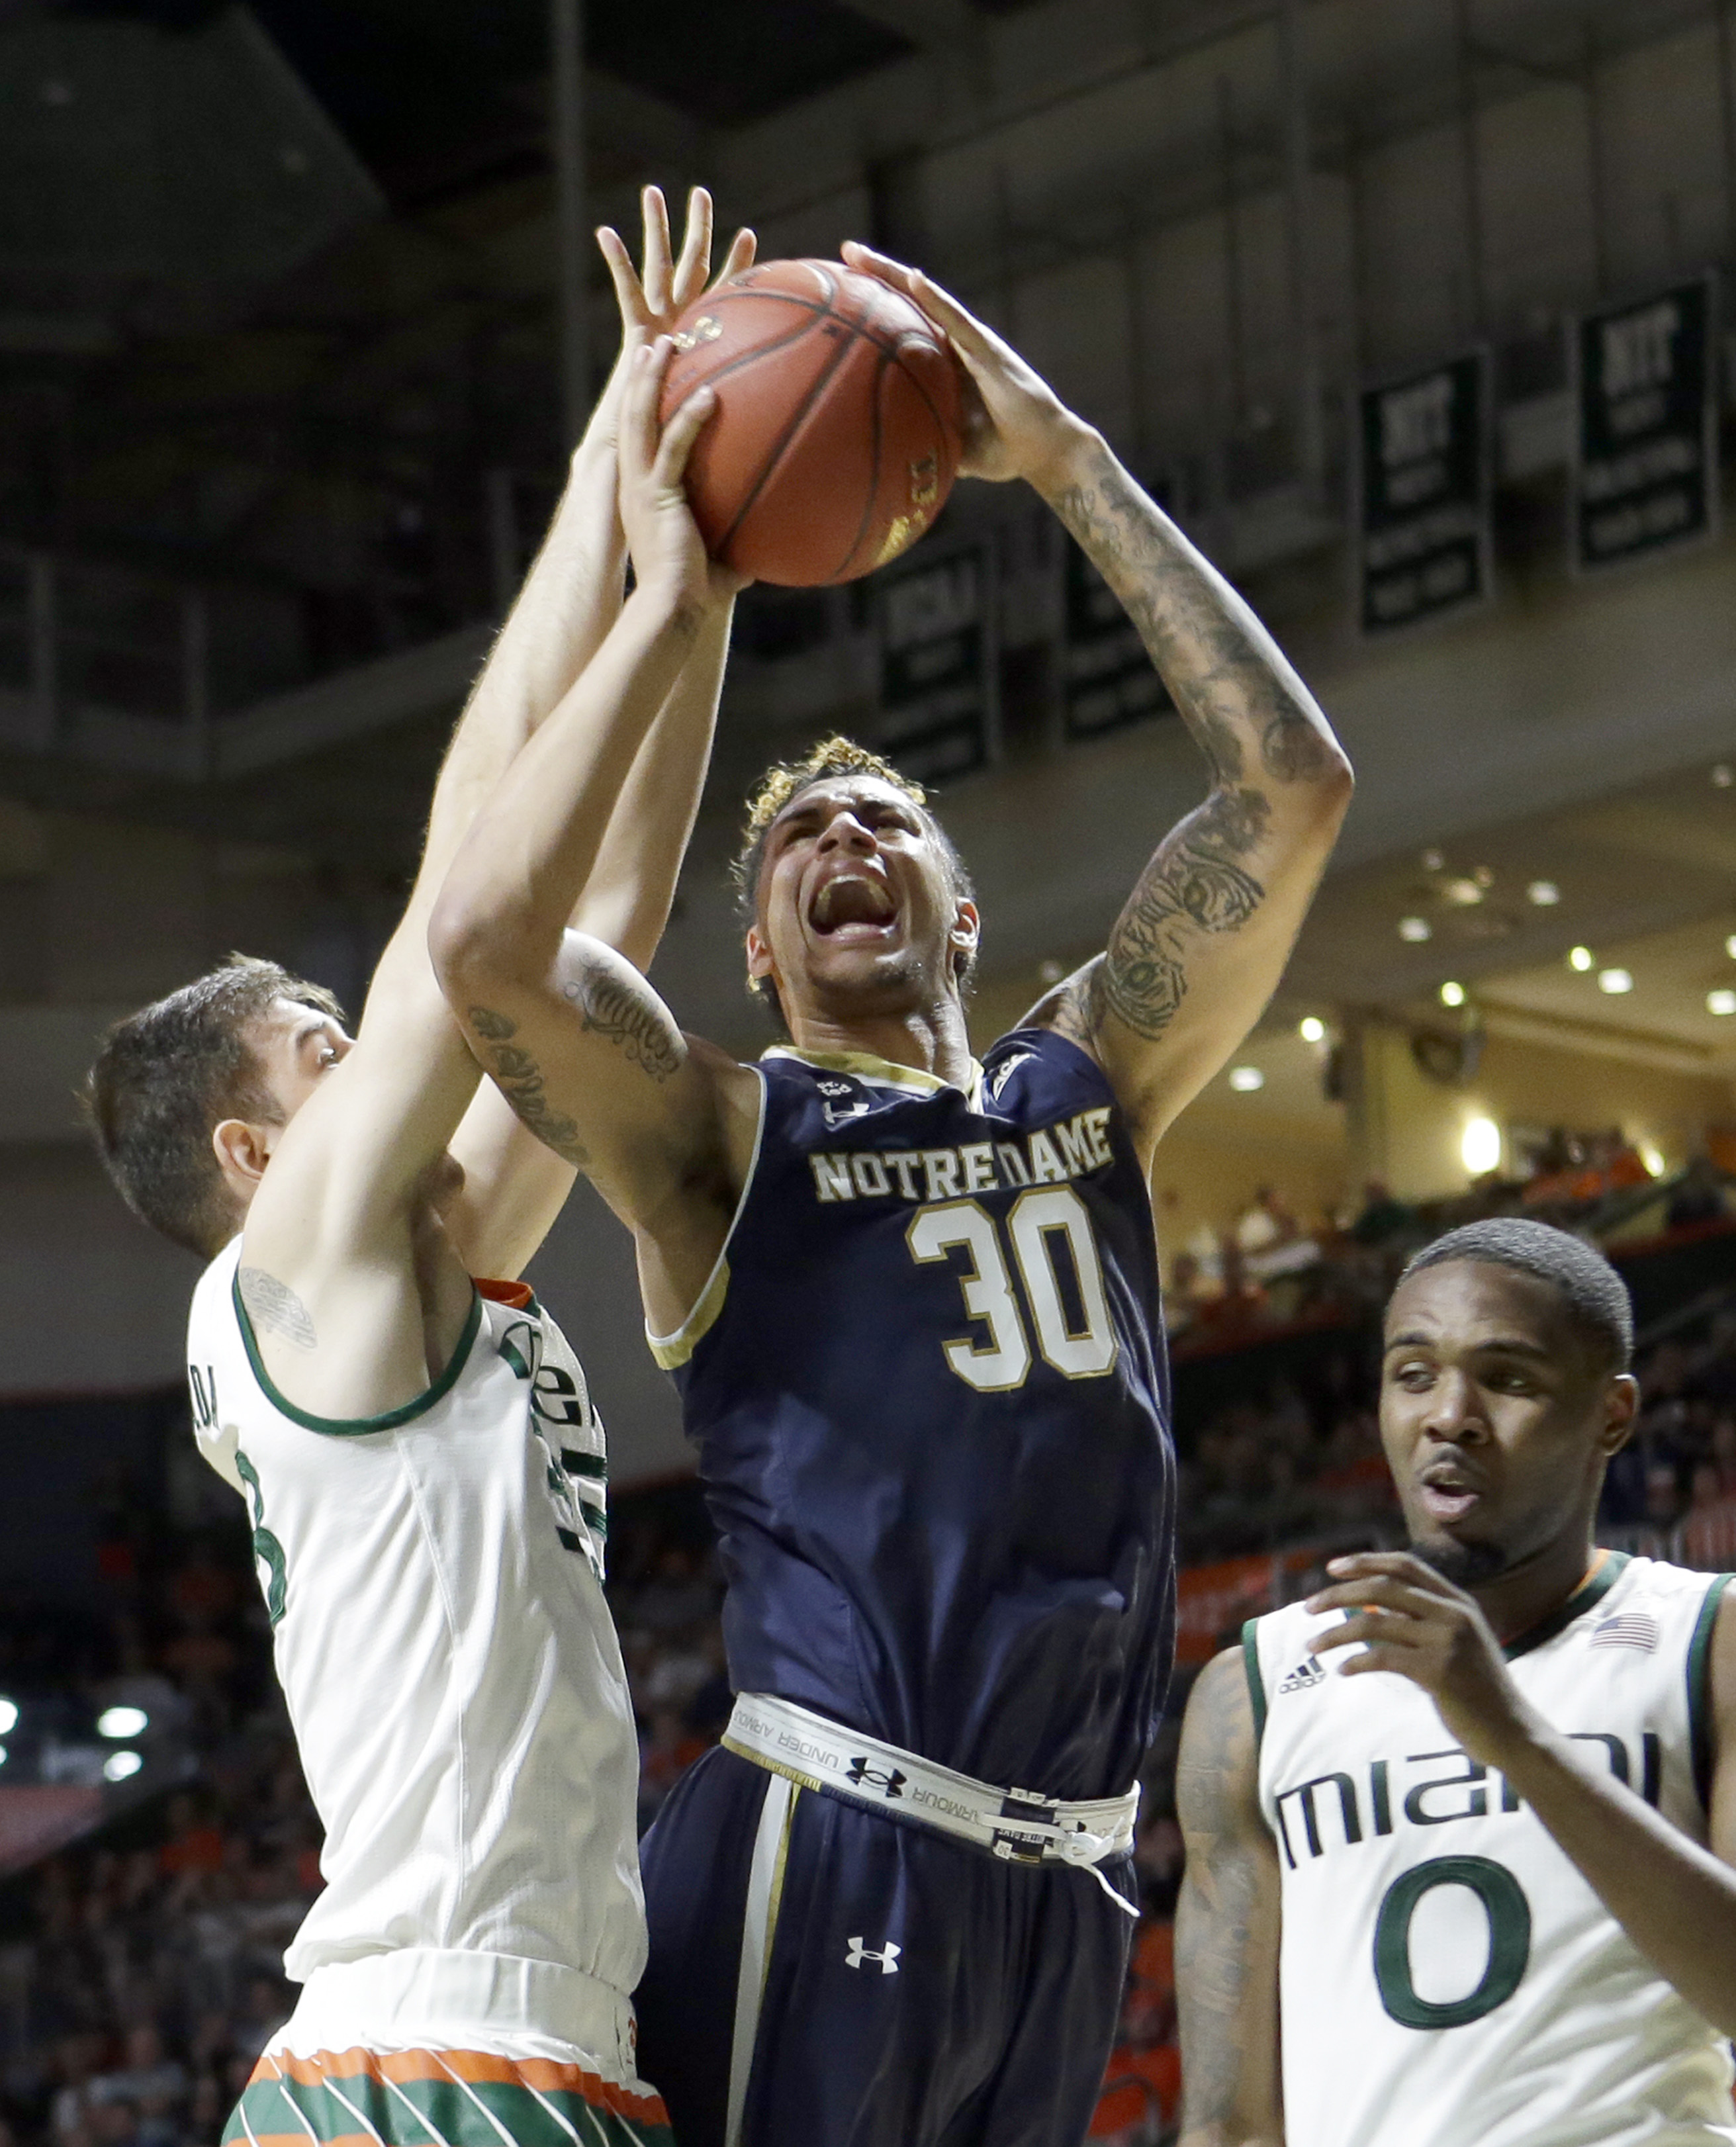 Notre Dame forward Zach Auguste (30) is fouled by as he goes to the basket by Miami forward Ivan Cruz Uceda, left, in the second half of an NCAA college basketball game, Wednesday, Feb.3, 2016, Coral Gables, Fla. Miami won 79-70. (AP Photo/Alan Diaz)